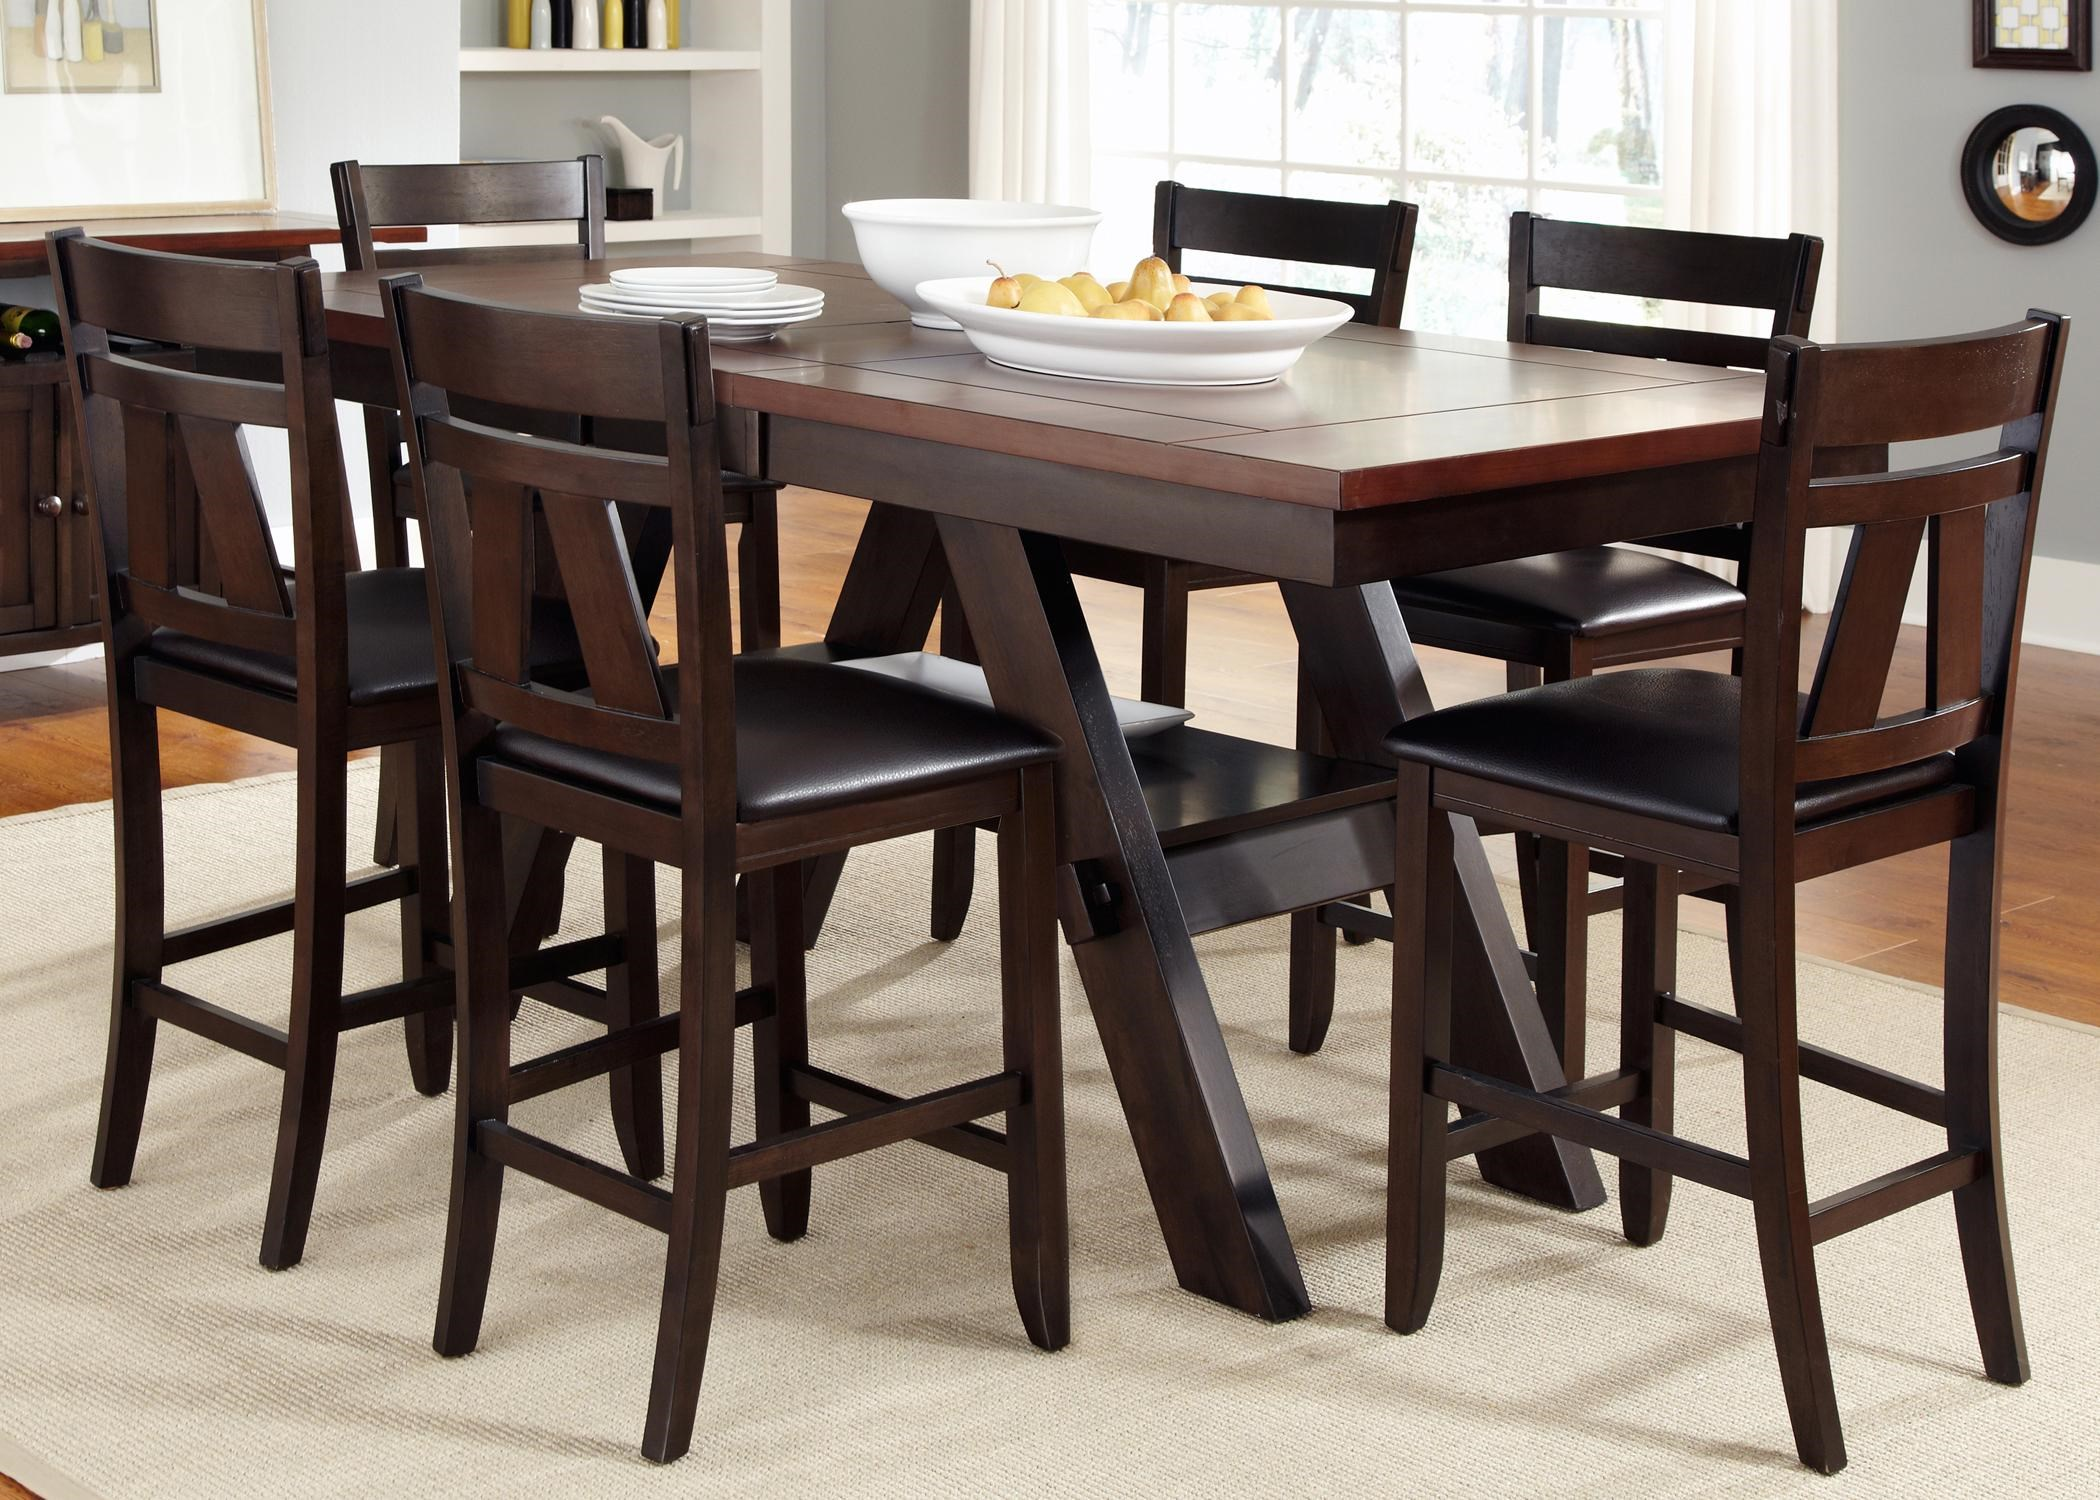 Vendor 5349 LawsonGathering Table with Counter Height Chairs & Vendor 5349 Lawson 7 Piece Trestle Gathering Table with Counter ...